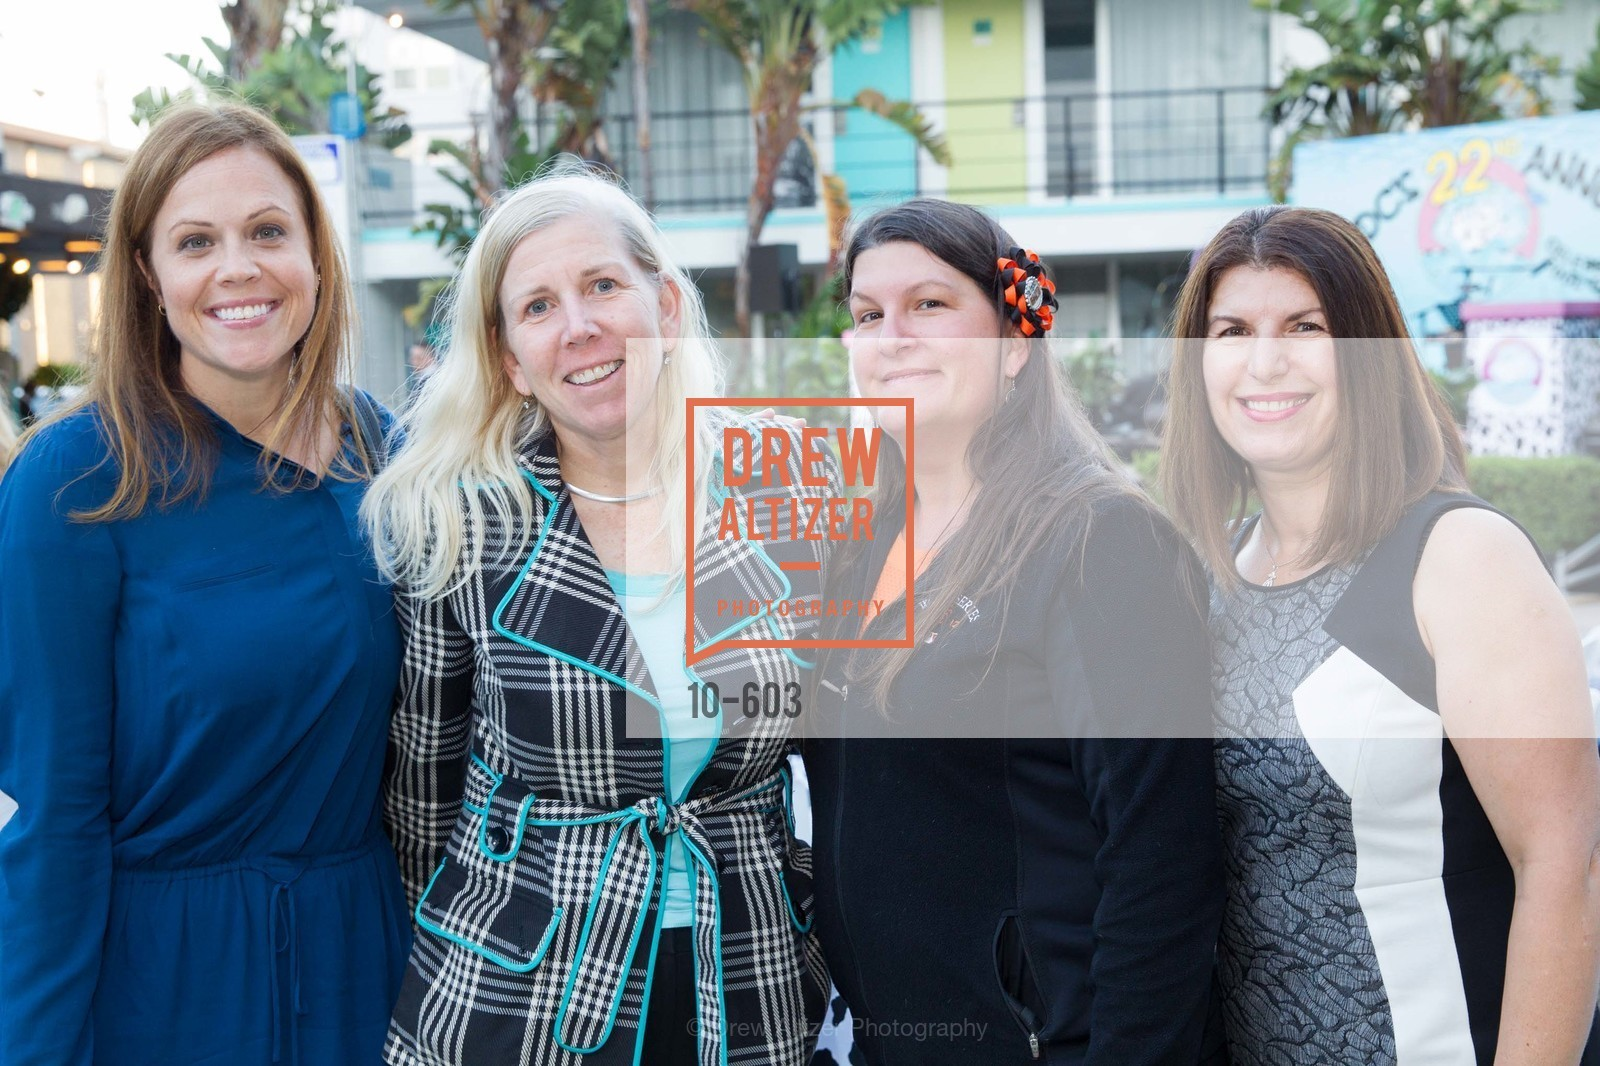 Kristin Biniek, Lynne Hillock, Jennifer Corbell, Samia Rached, 22nd Annual TNDC CELEBRITY POOL TOSS, US, October 8th, 2014,Drew Altizer, Drew Altizer Photography, full-service agency, private events, San Francisco photographer, photographer california